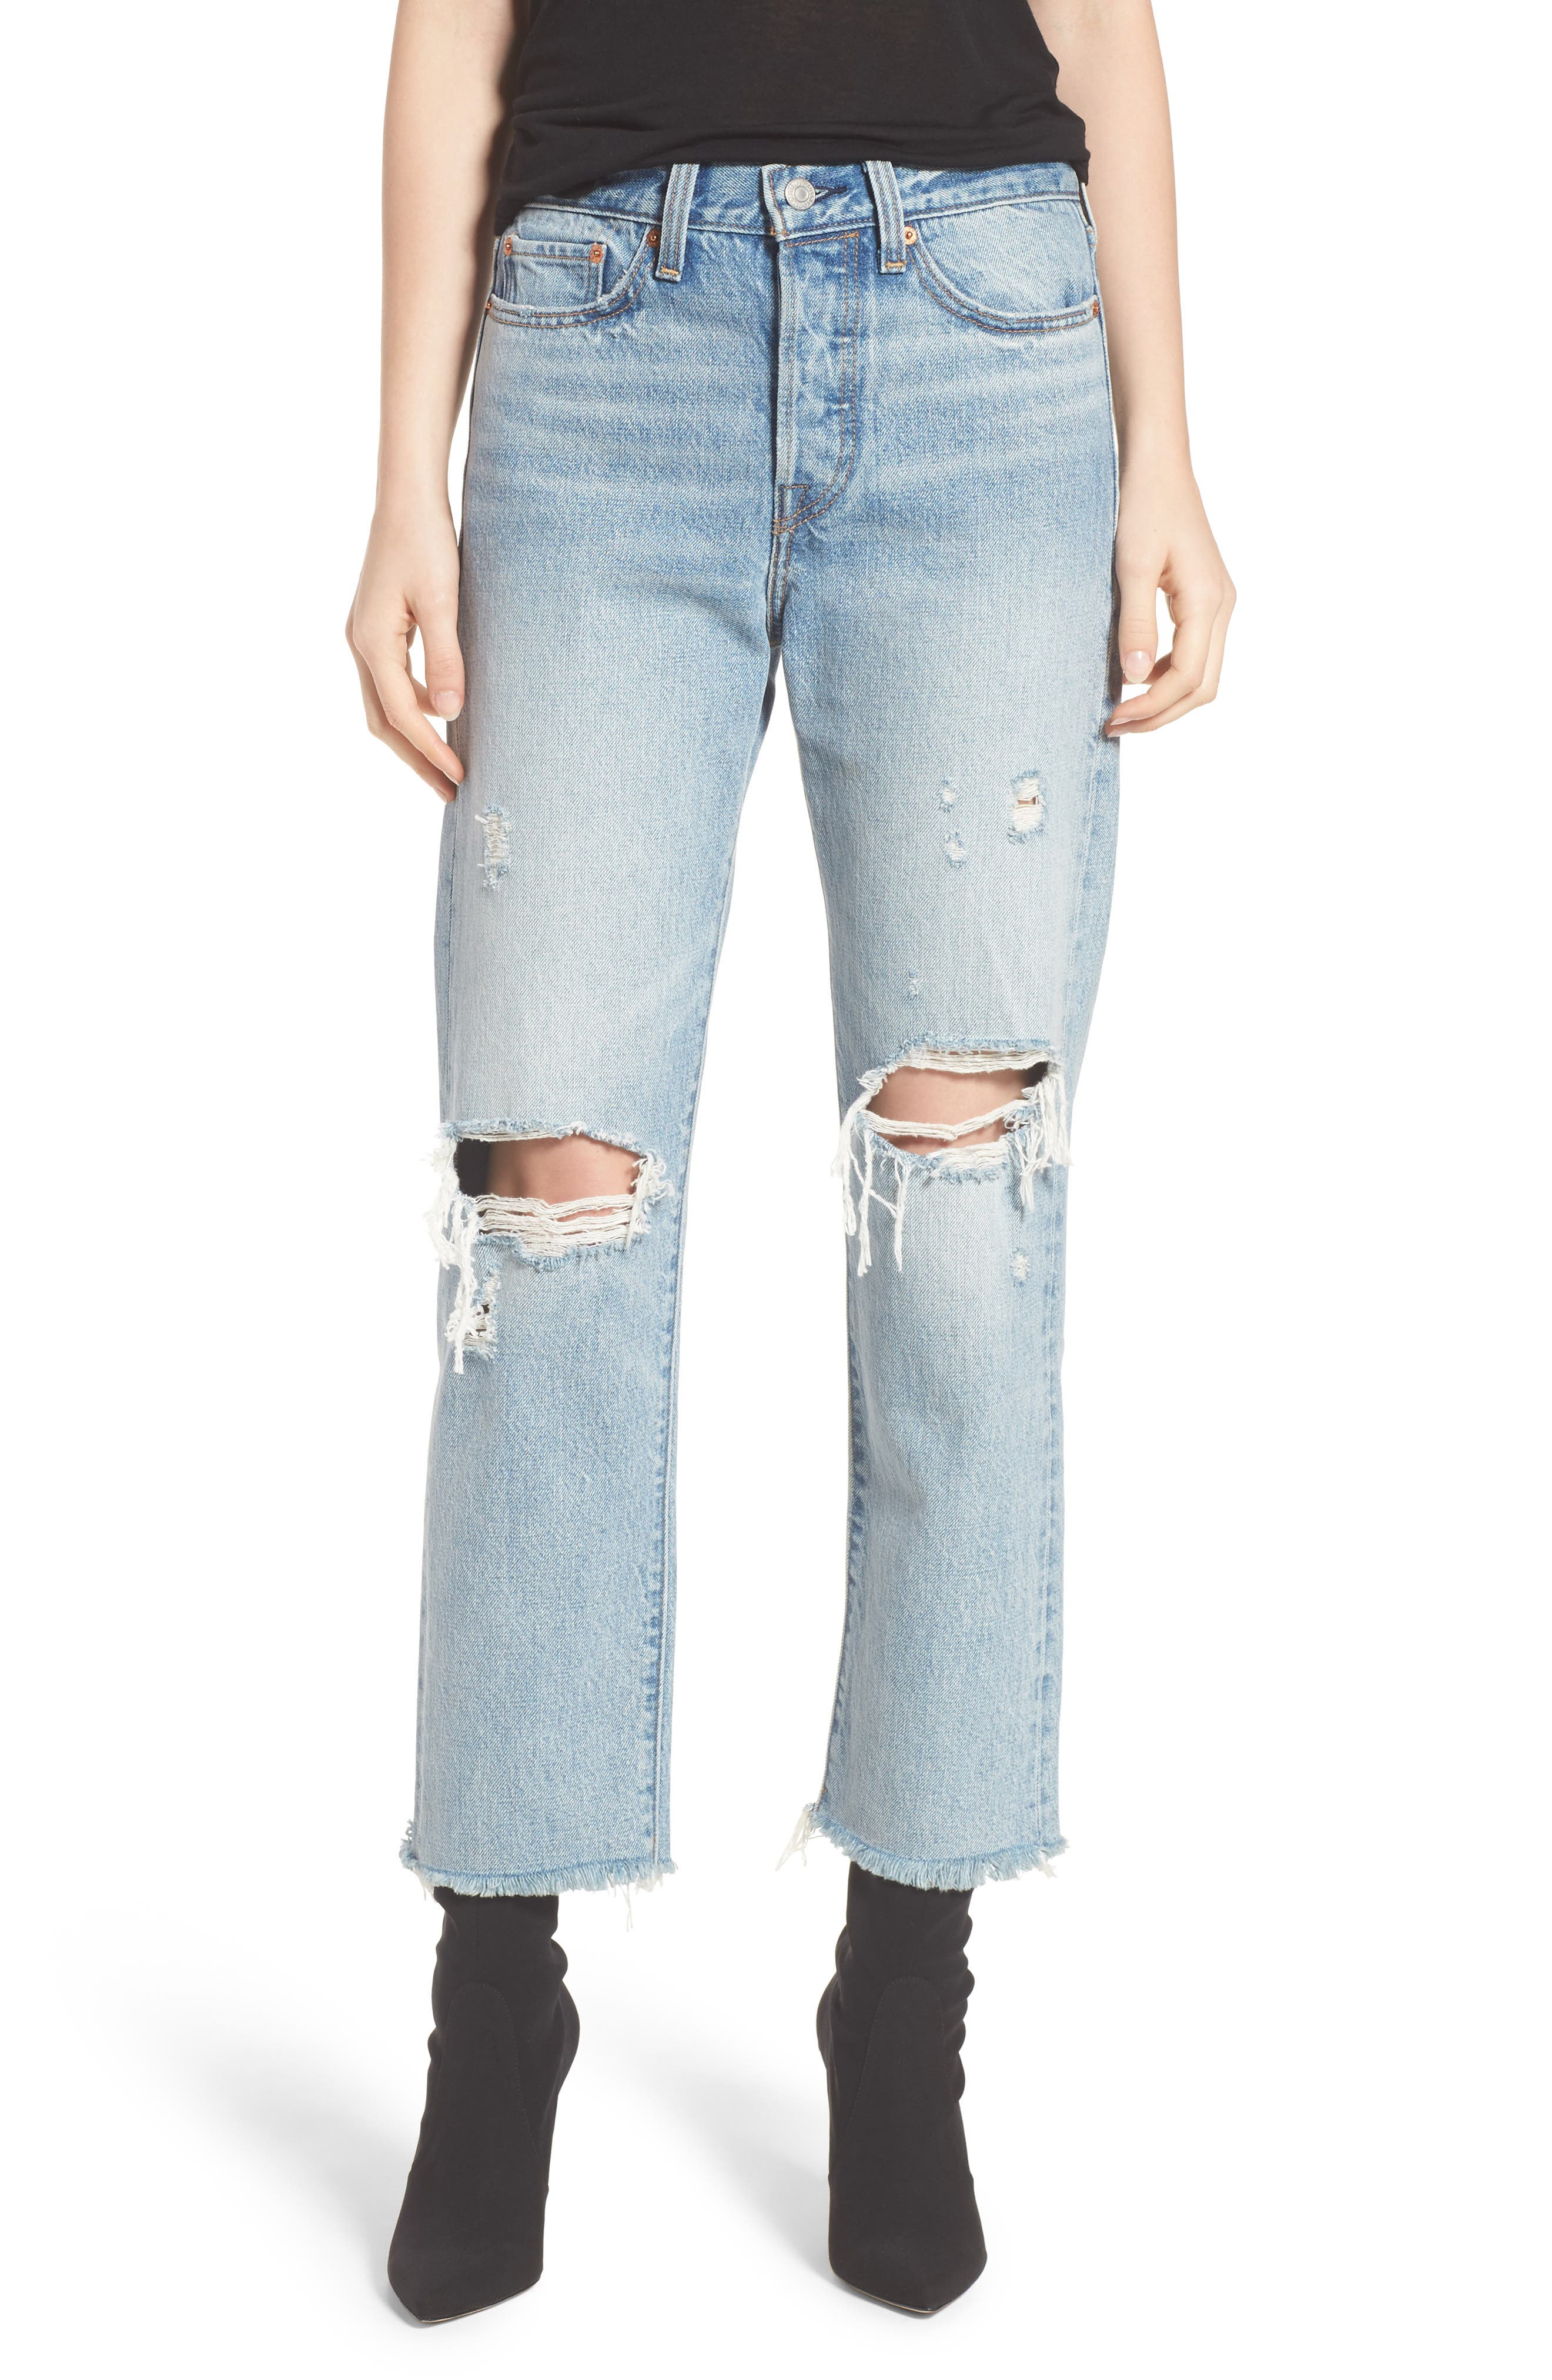 Wedgie High Waist Straight Jeans,                             Main thumbnail 1, color,                             420